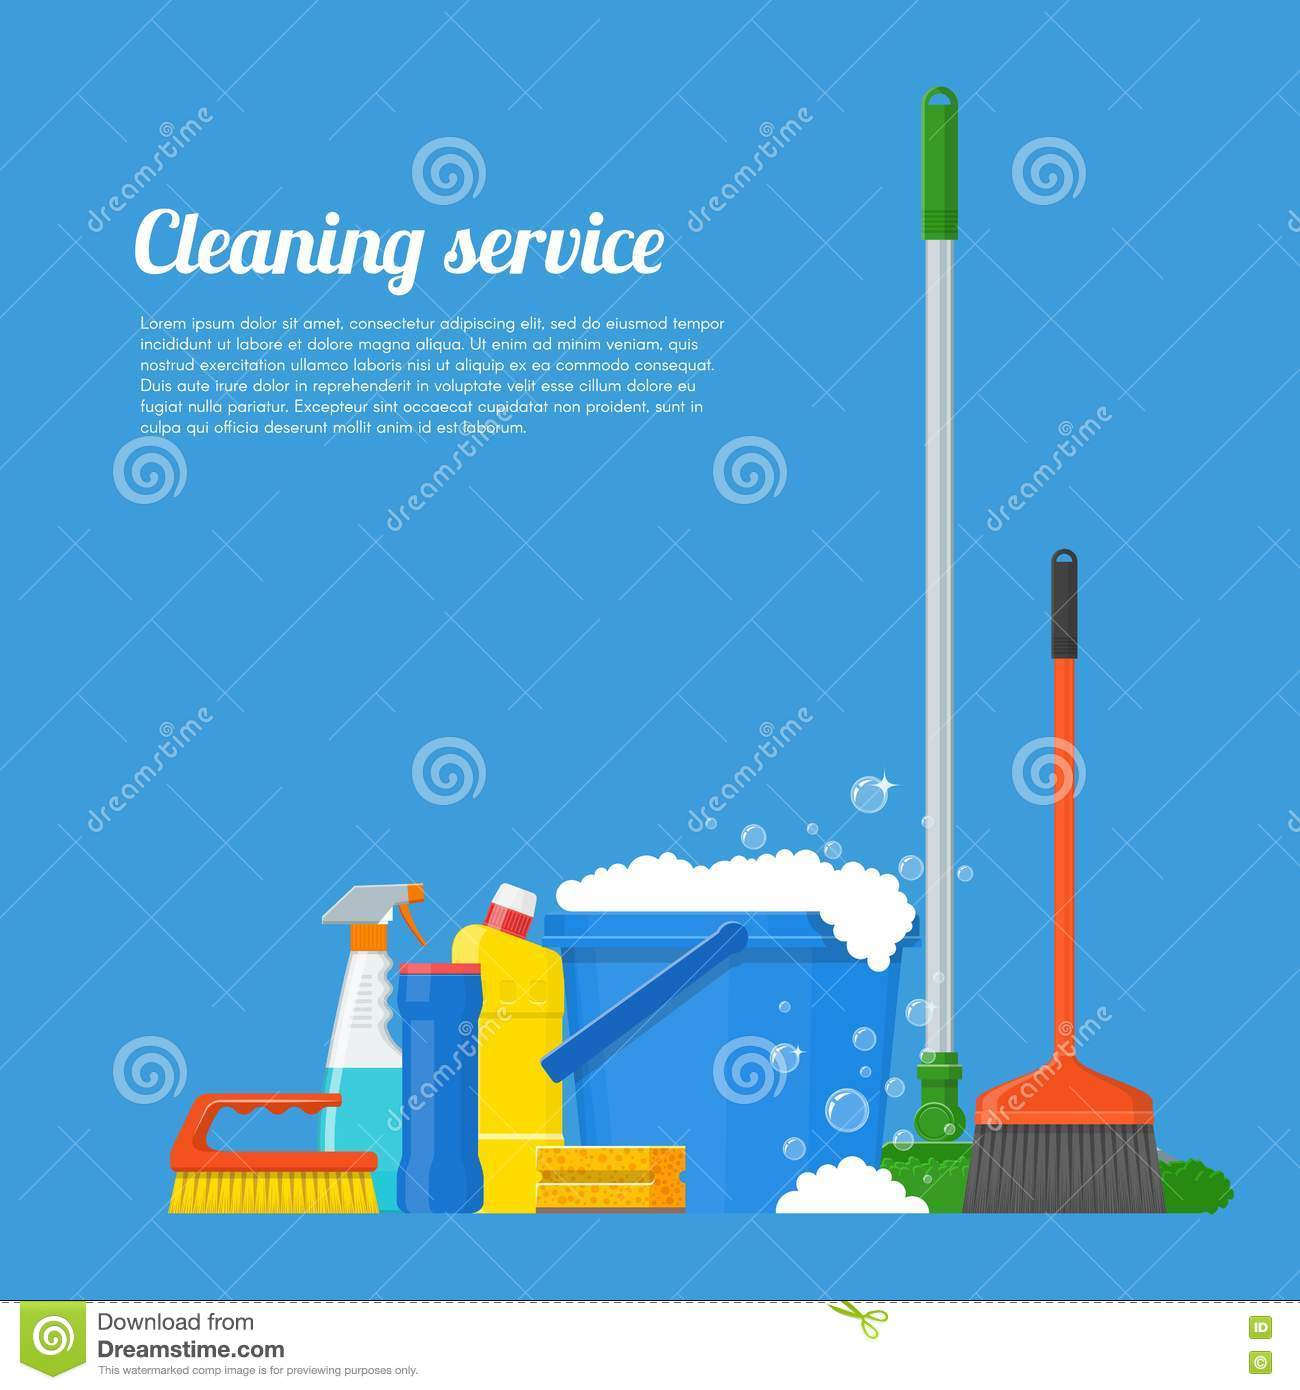 cleaning service company concept vector illustration house tools cleaning service company concept vector illustration house tools poster design in flat style